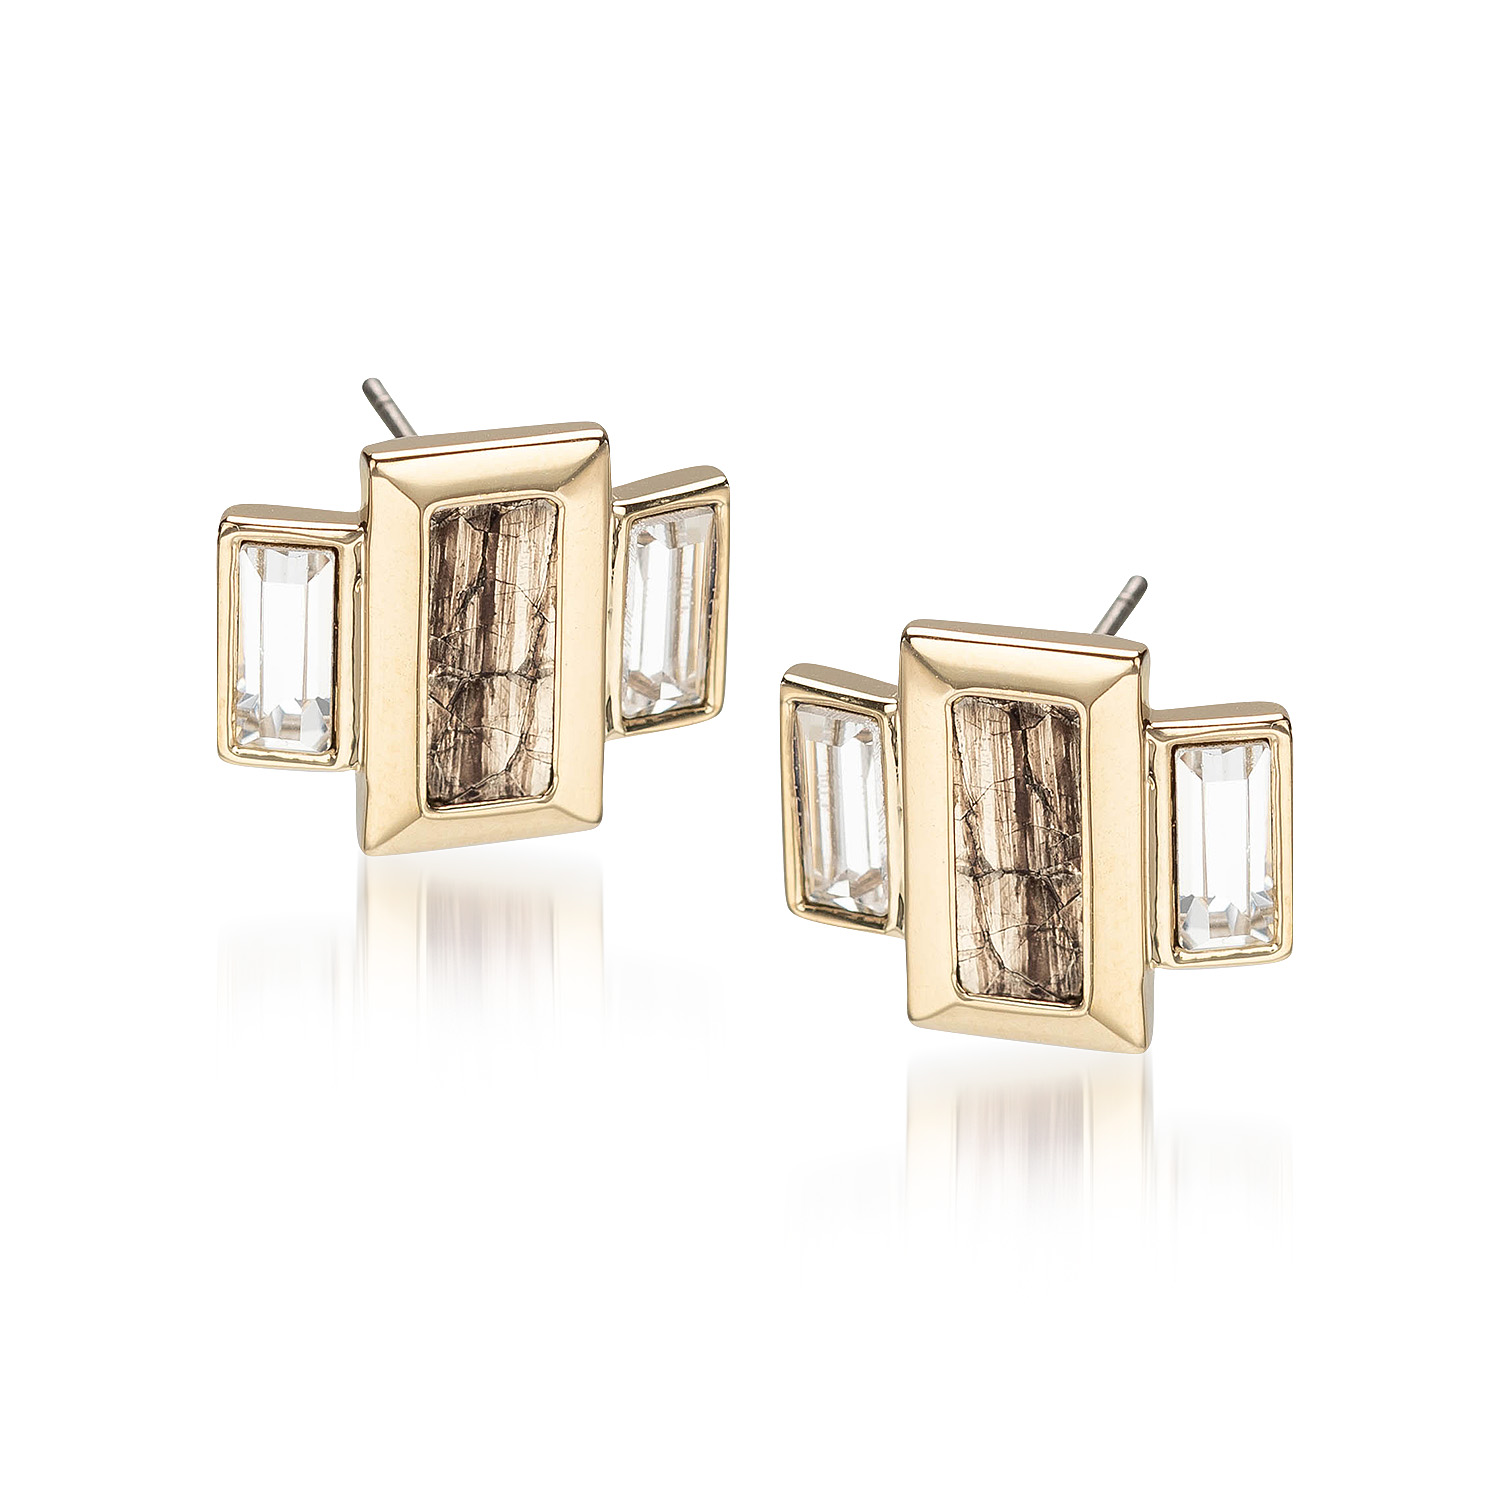 Emerald Cut Crystal Earrings Gold Fairhaven